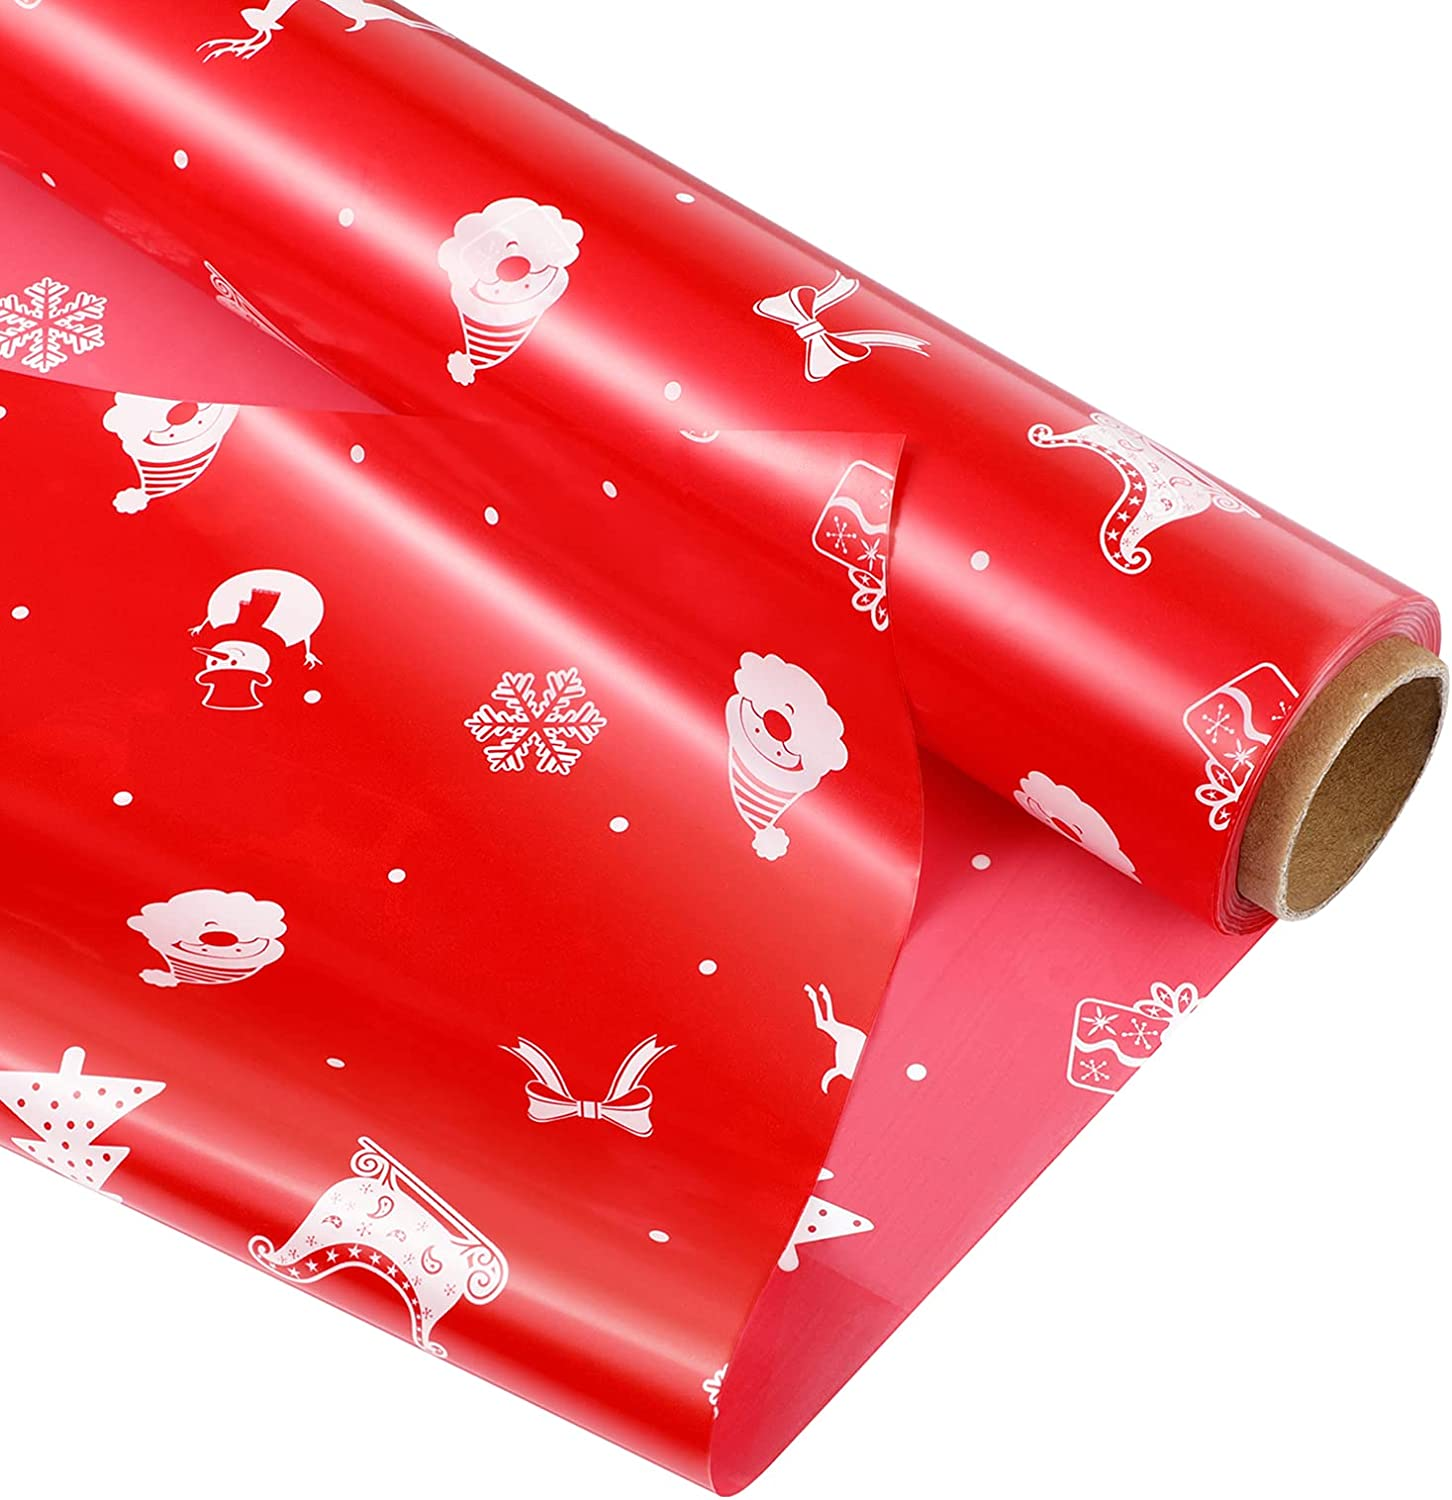 ABOOFAN Christmas Cellophane Wrap Easy-to-use Very popular Roll Red Wrappin 2. Mil 5